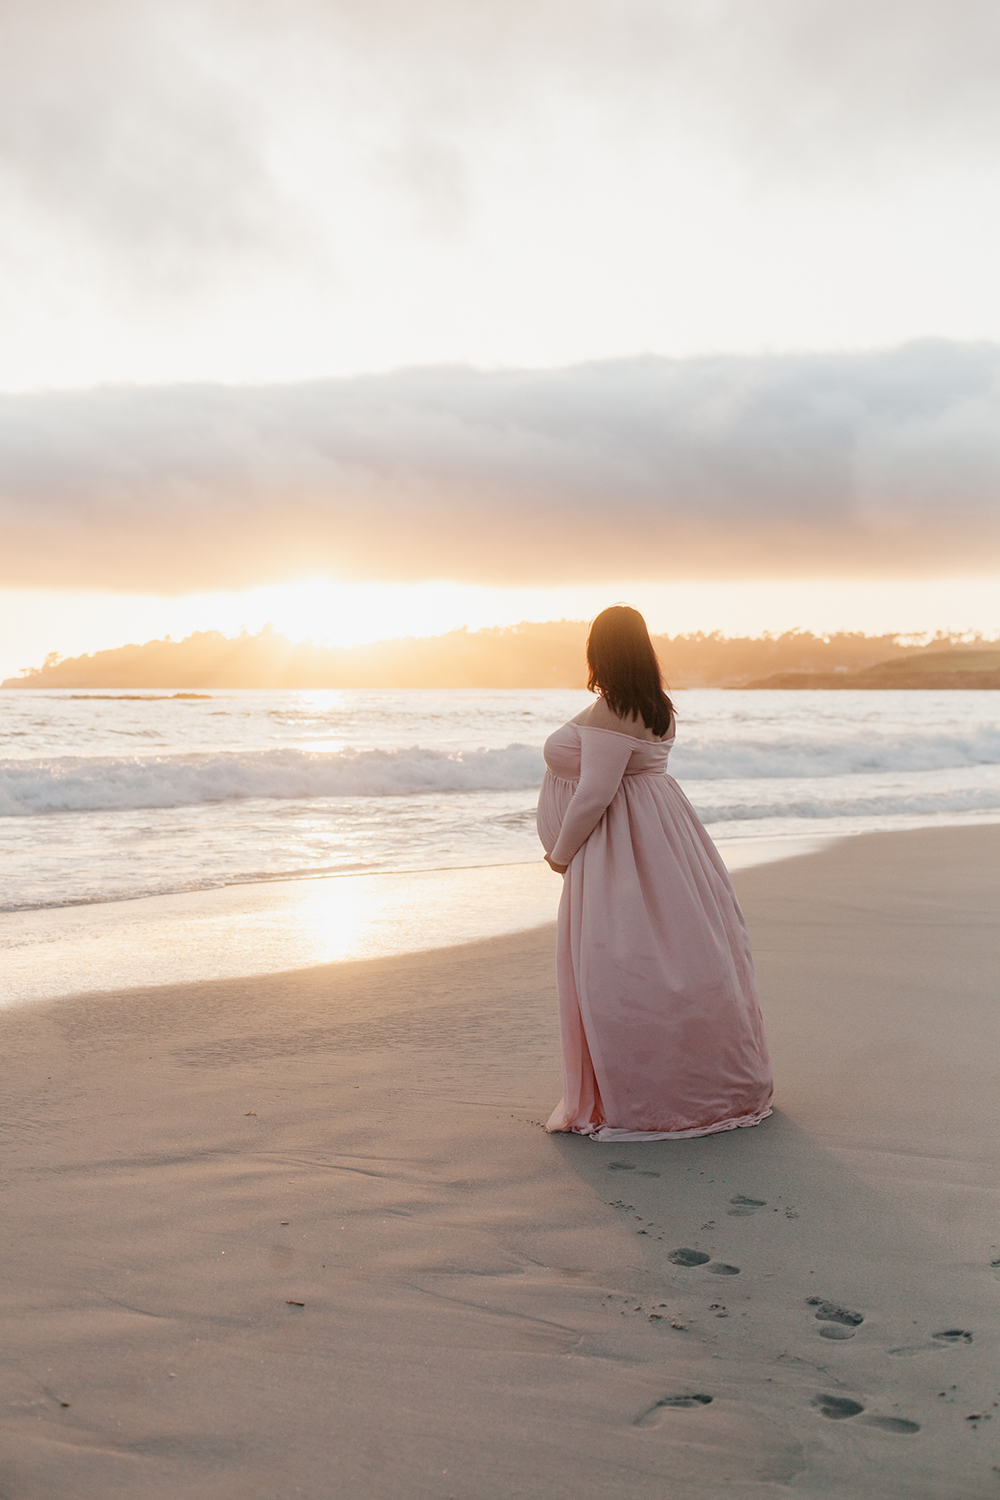 Pregnant woman in a pink dress standing on the beach looking away at the sunset.